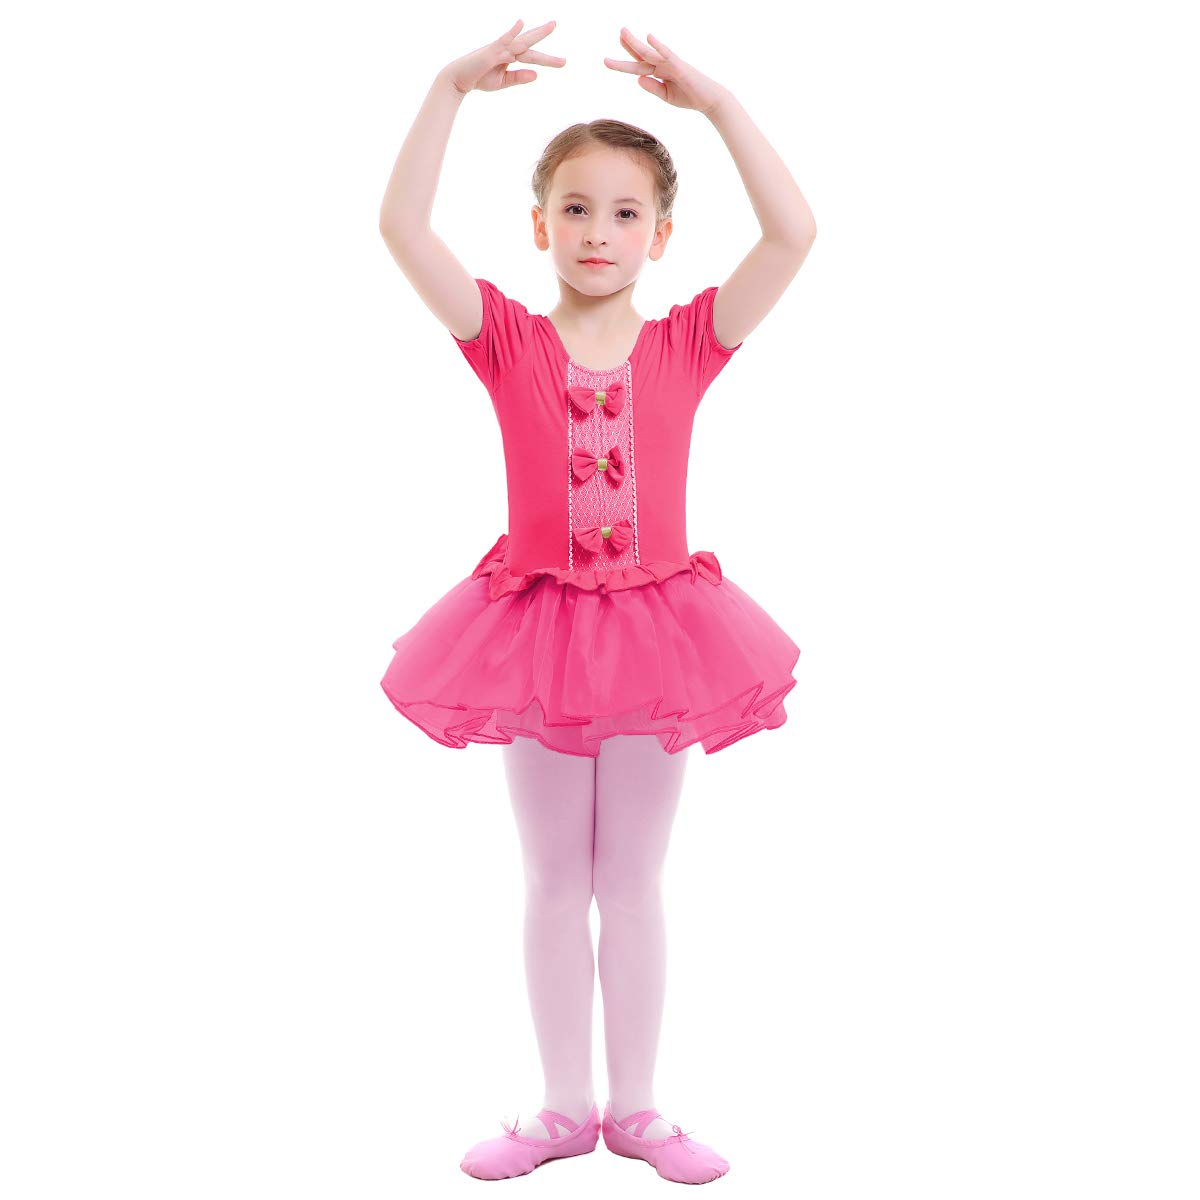 bd60f380b Girls Ballet Dance Tutu Dress Leotard Ruffled Tulle Skirt Ballerina ...